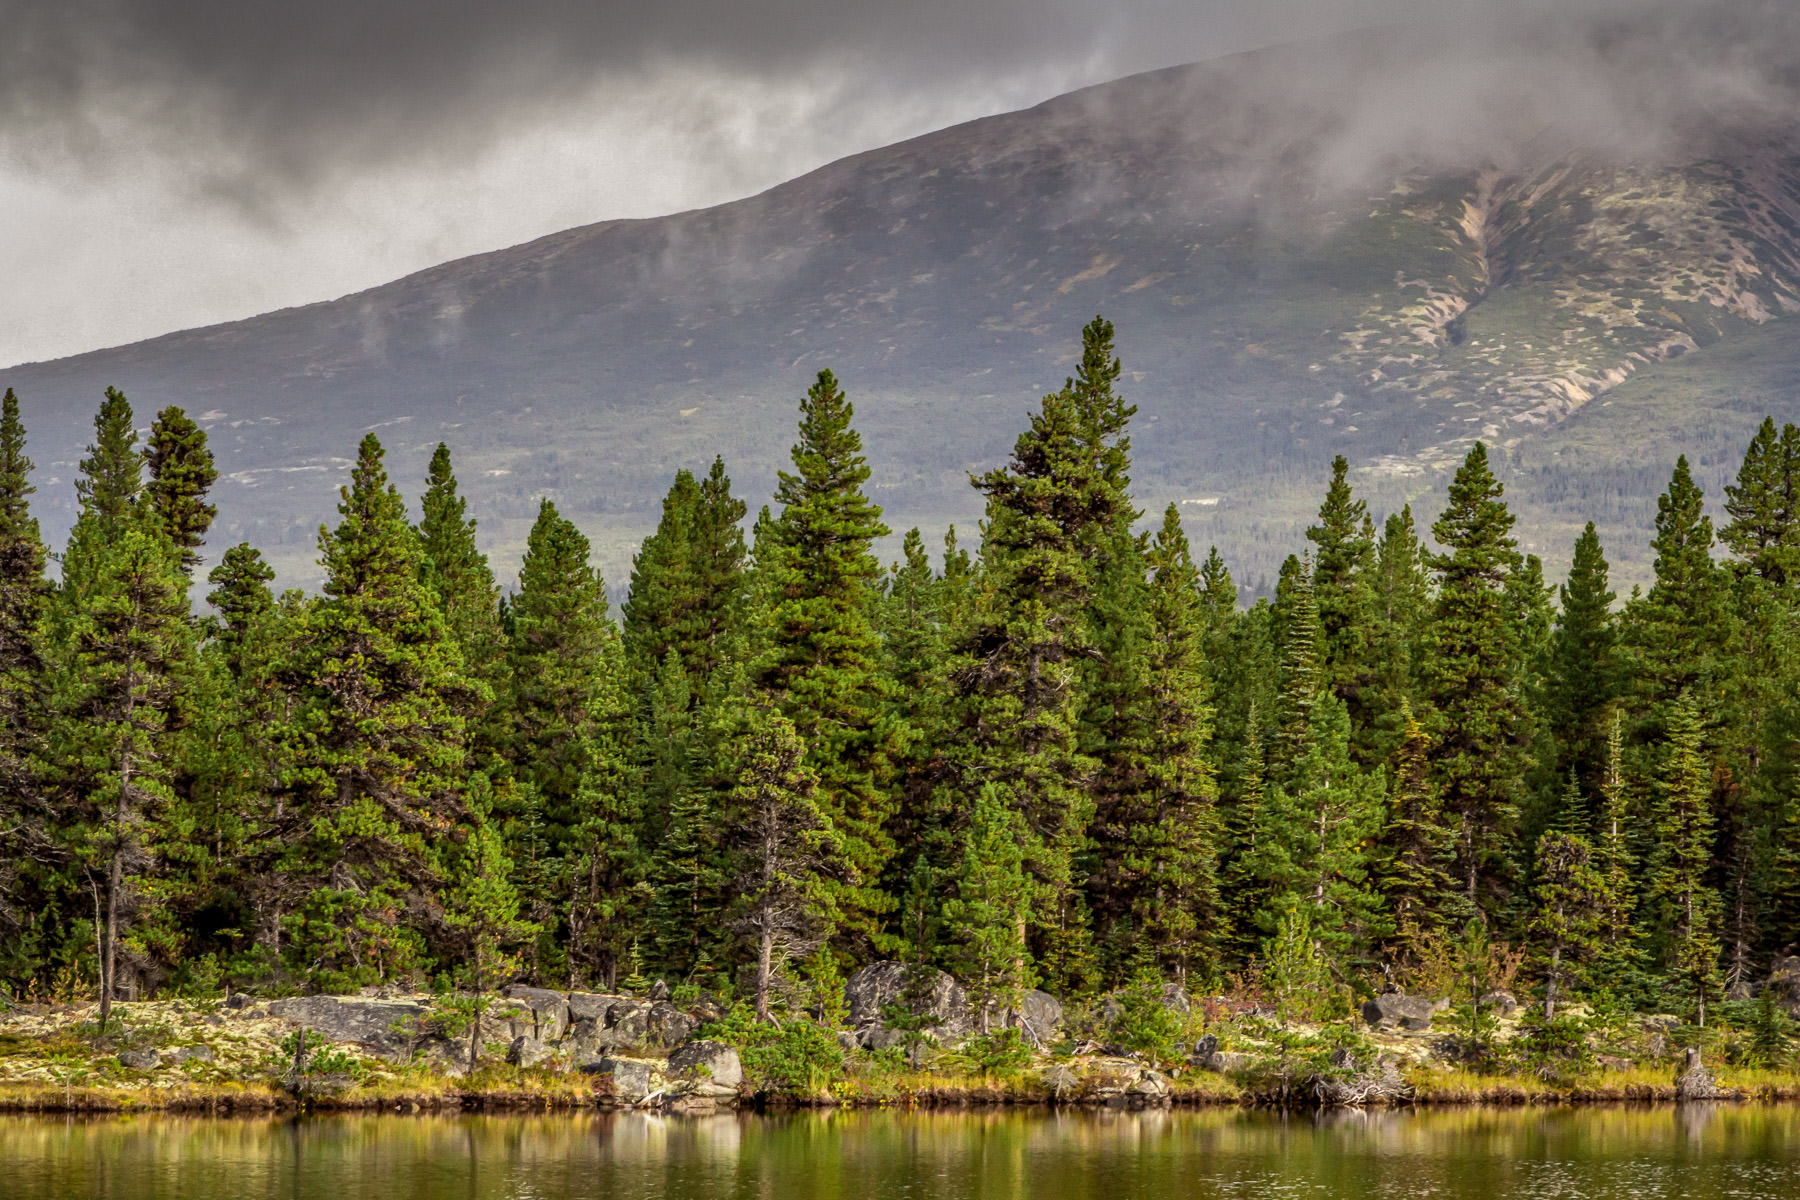 Pine trees catch the pre-rain sun as they grow along a small lake in British Columbia's Stikine Region.